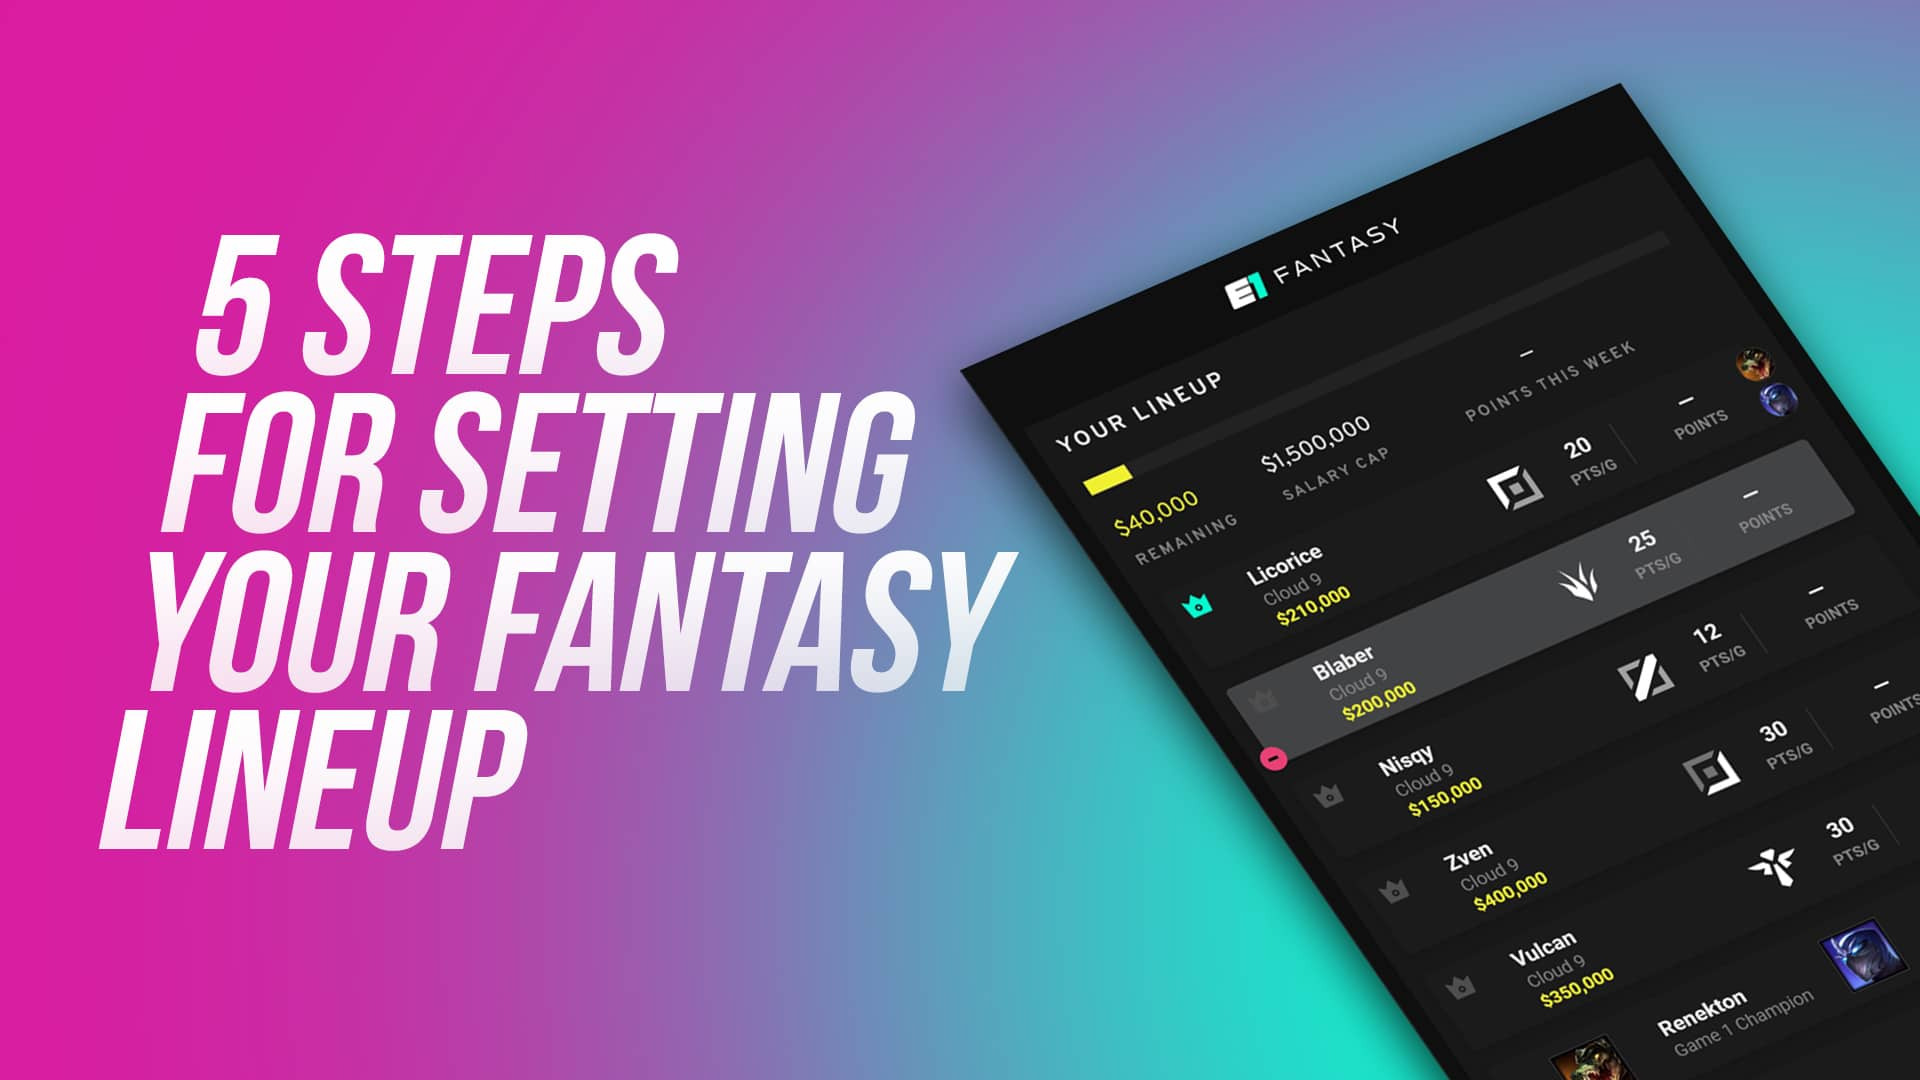 5 Steps For Setting Your Fantasy Lineup